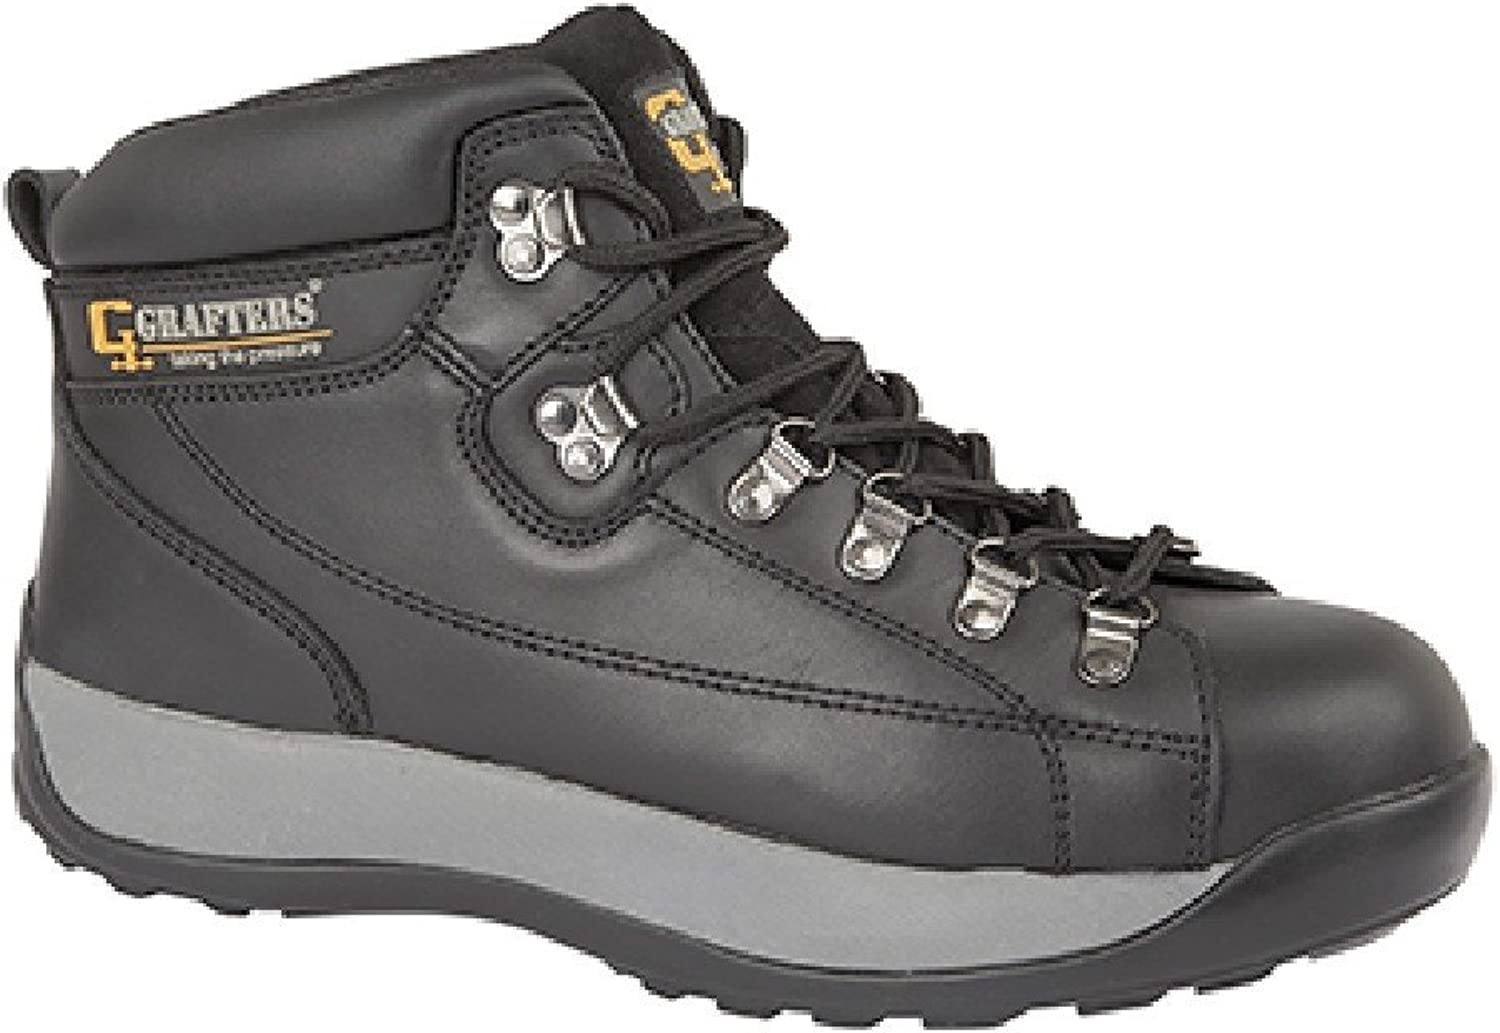 Grafters Unisex SB SRA Oily Leather Safety Boots Black